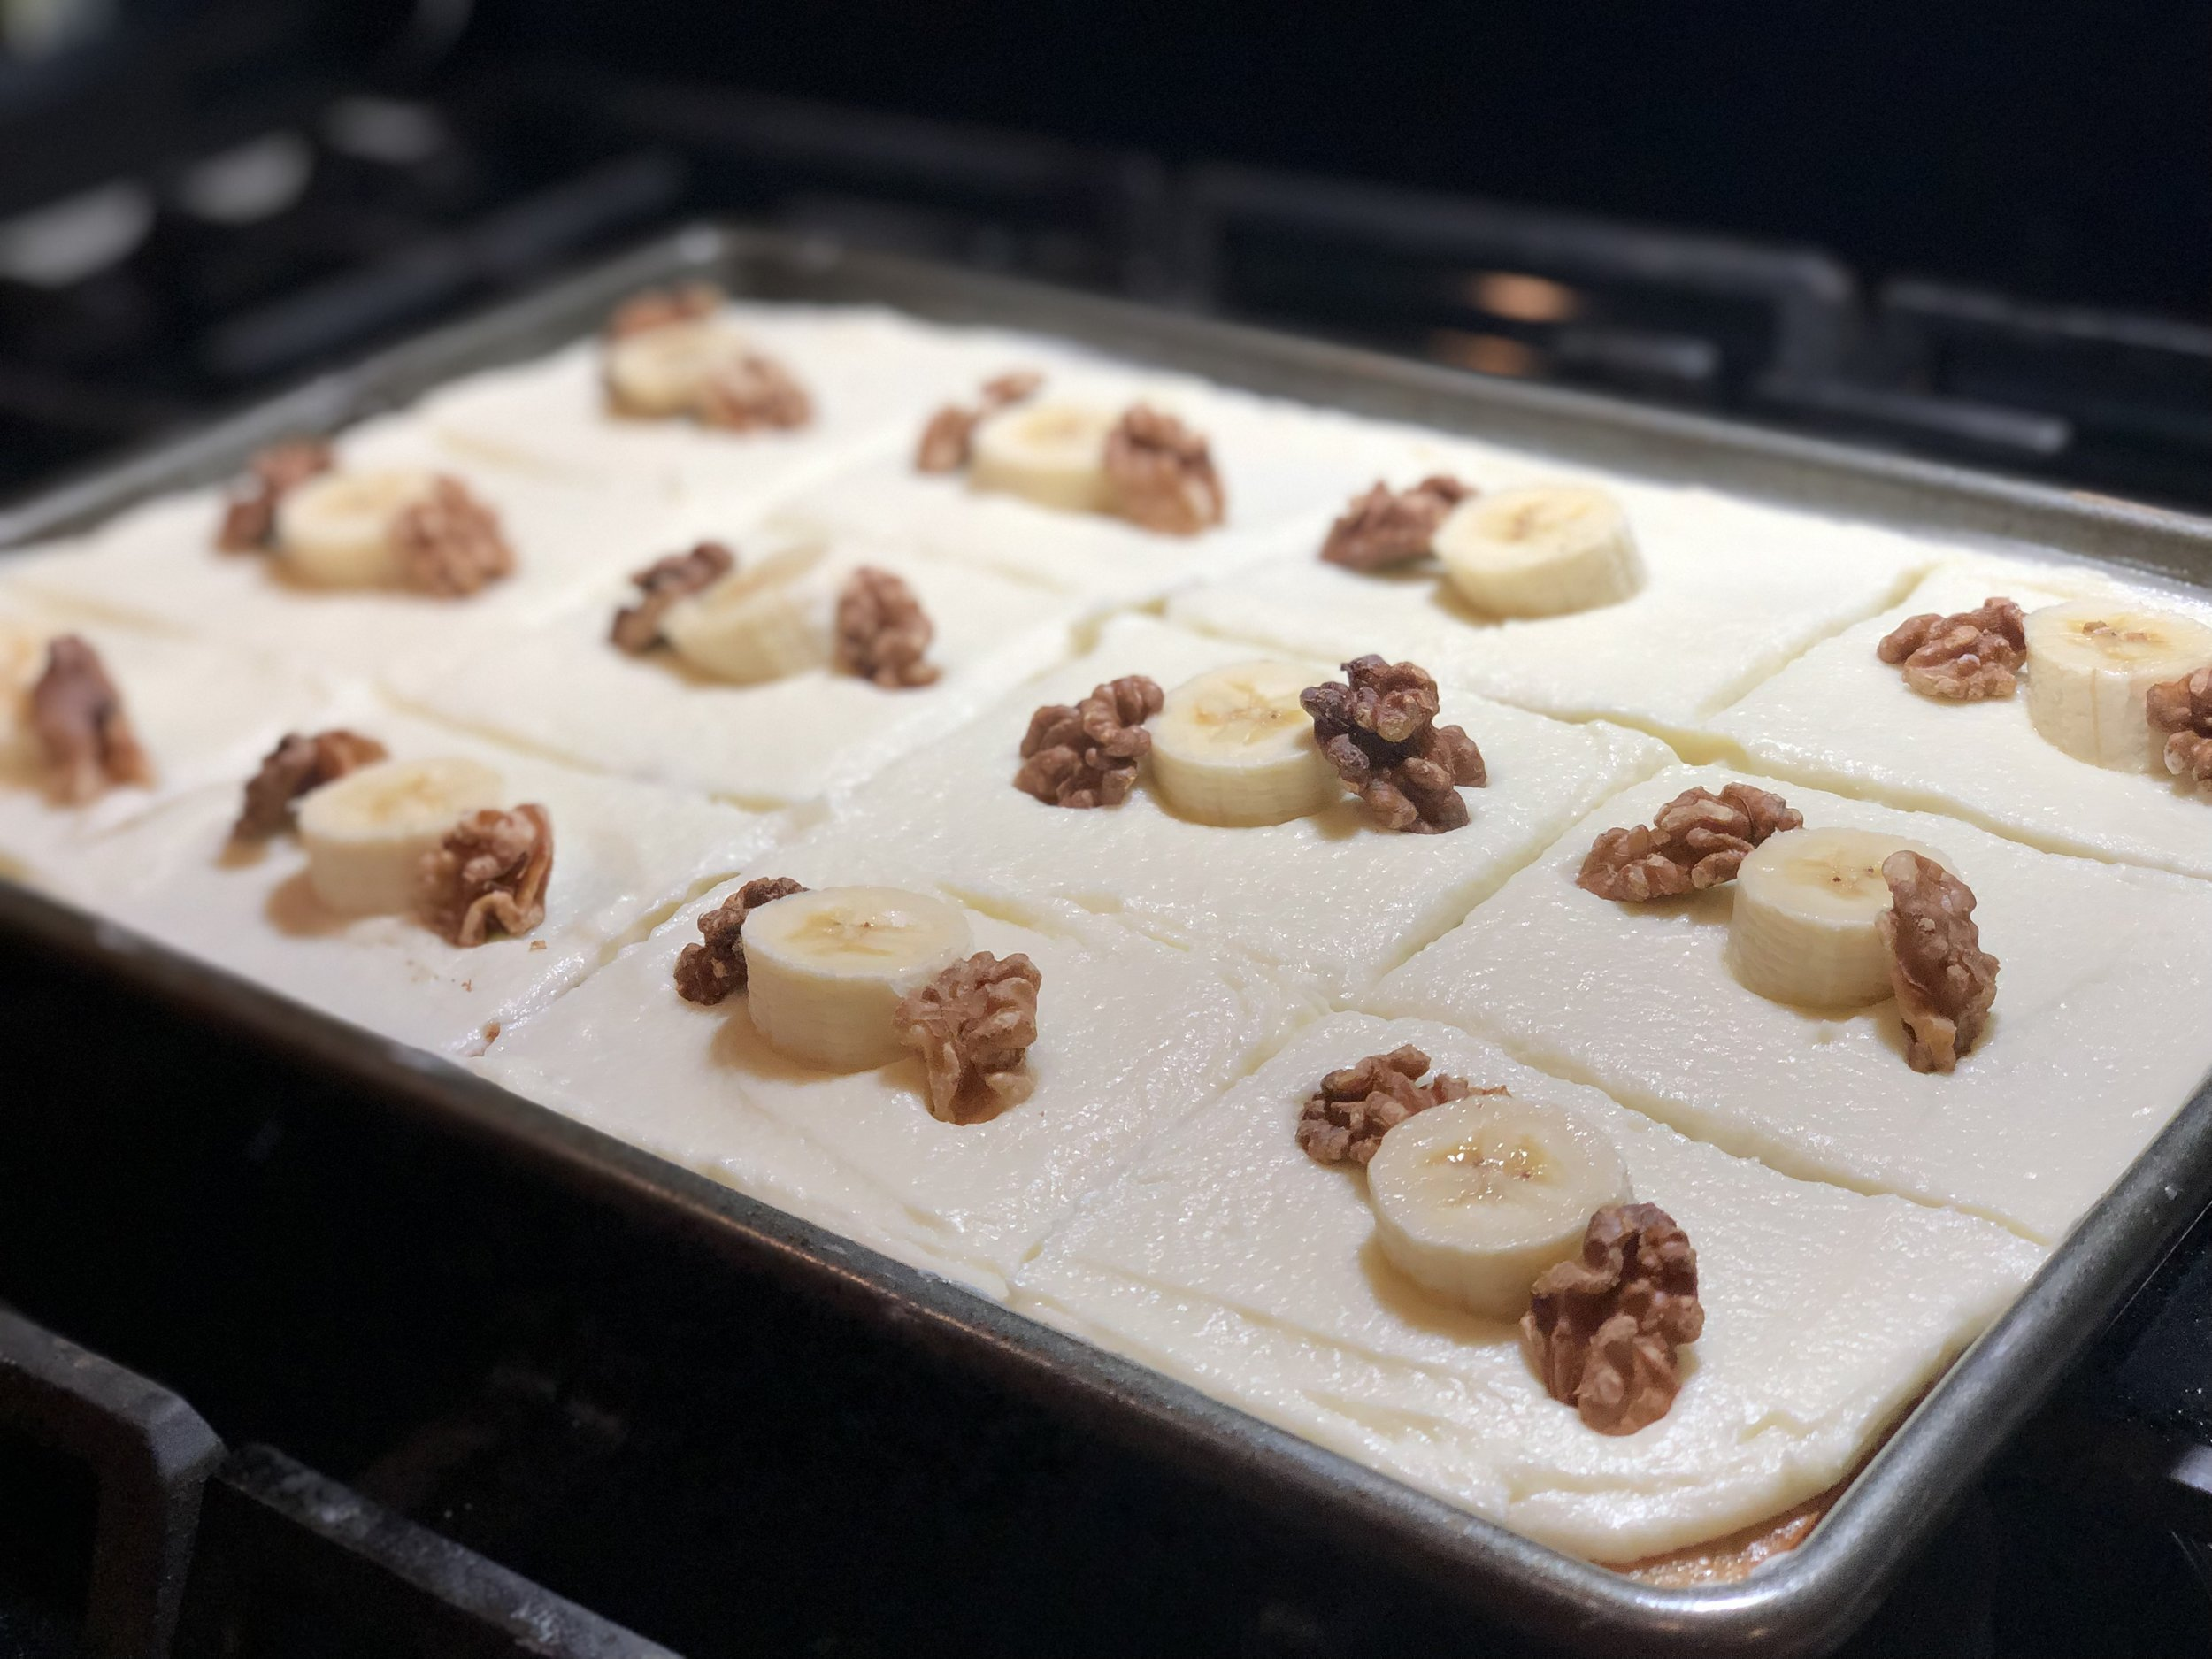 Winter weather won't get me down…. Scotty's Banana (Half) Sheet Cake just came to town!